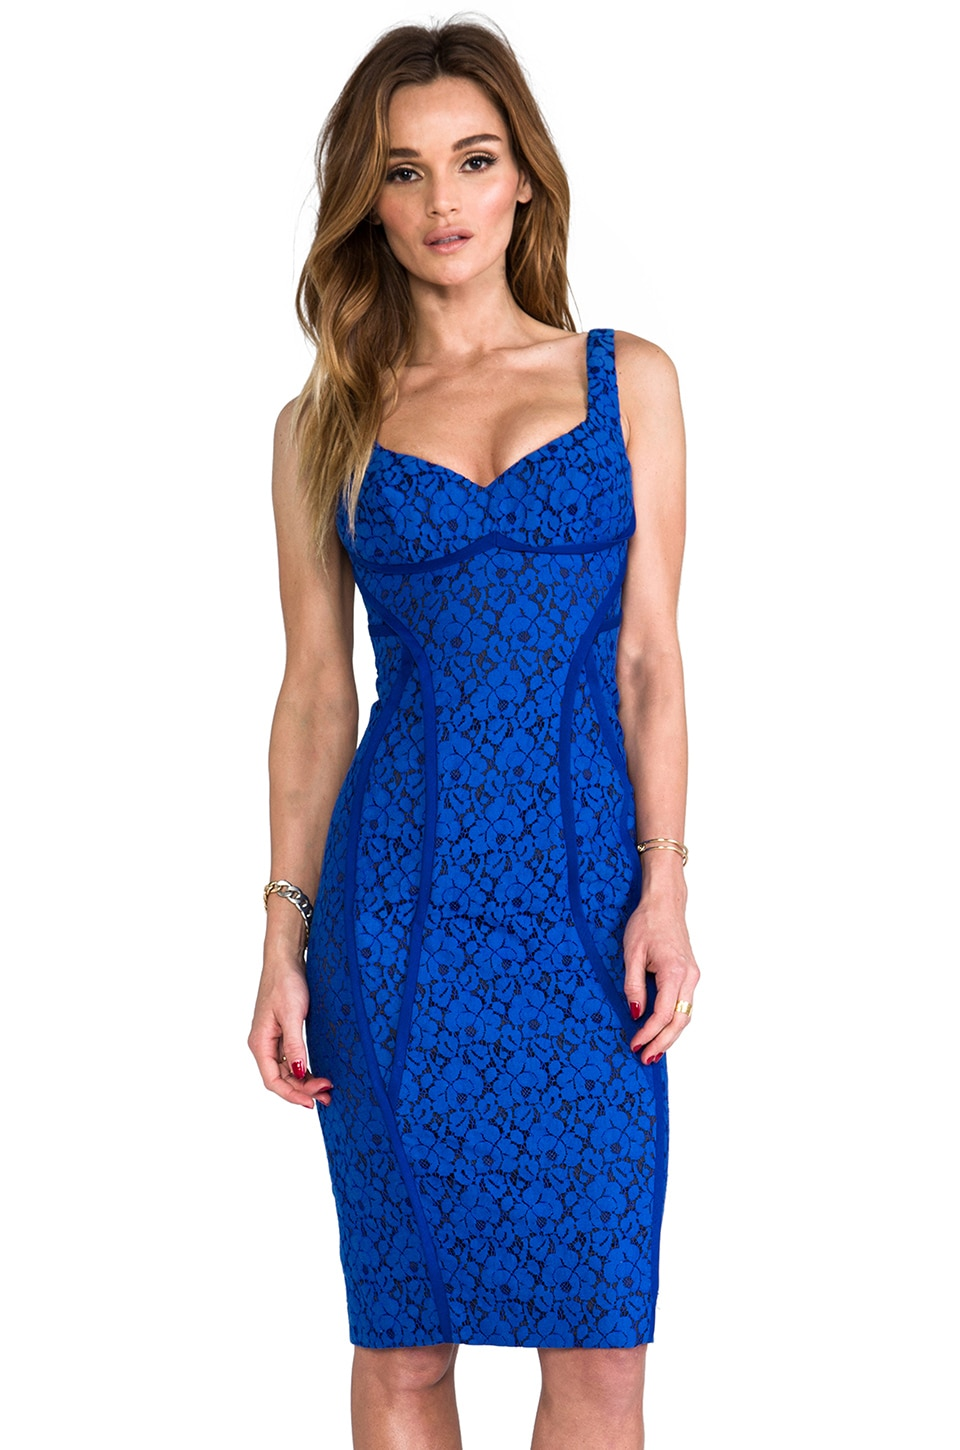 Black Halo Erik Sheath Dress in Lapis/Black